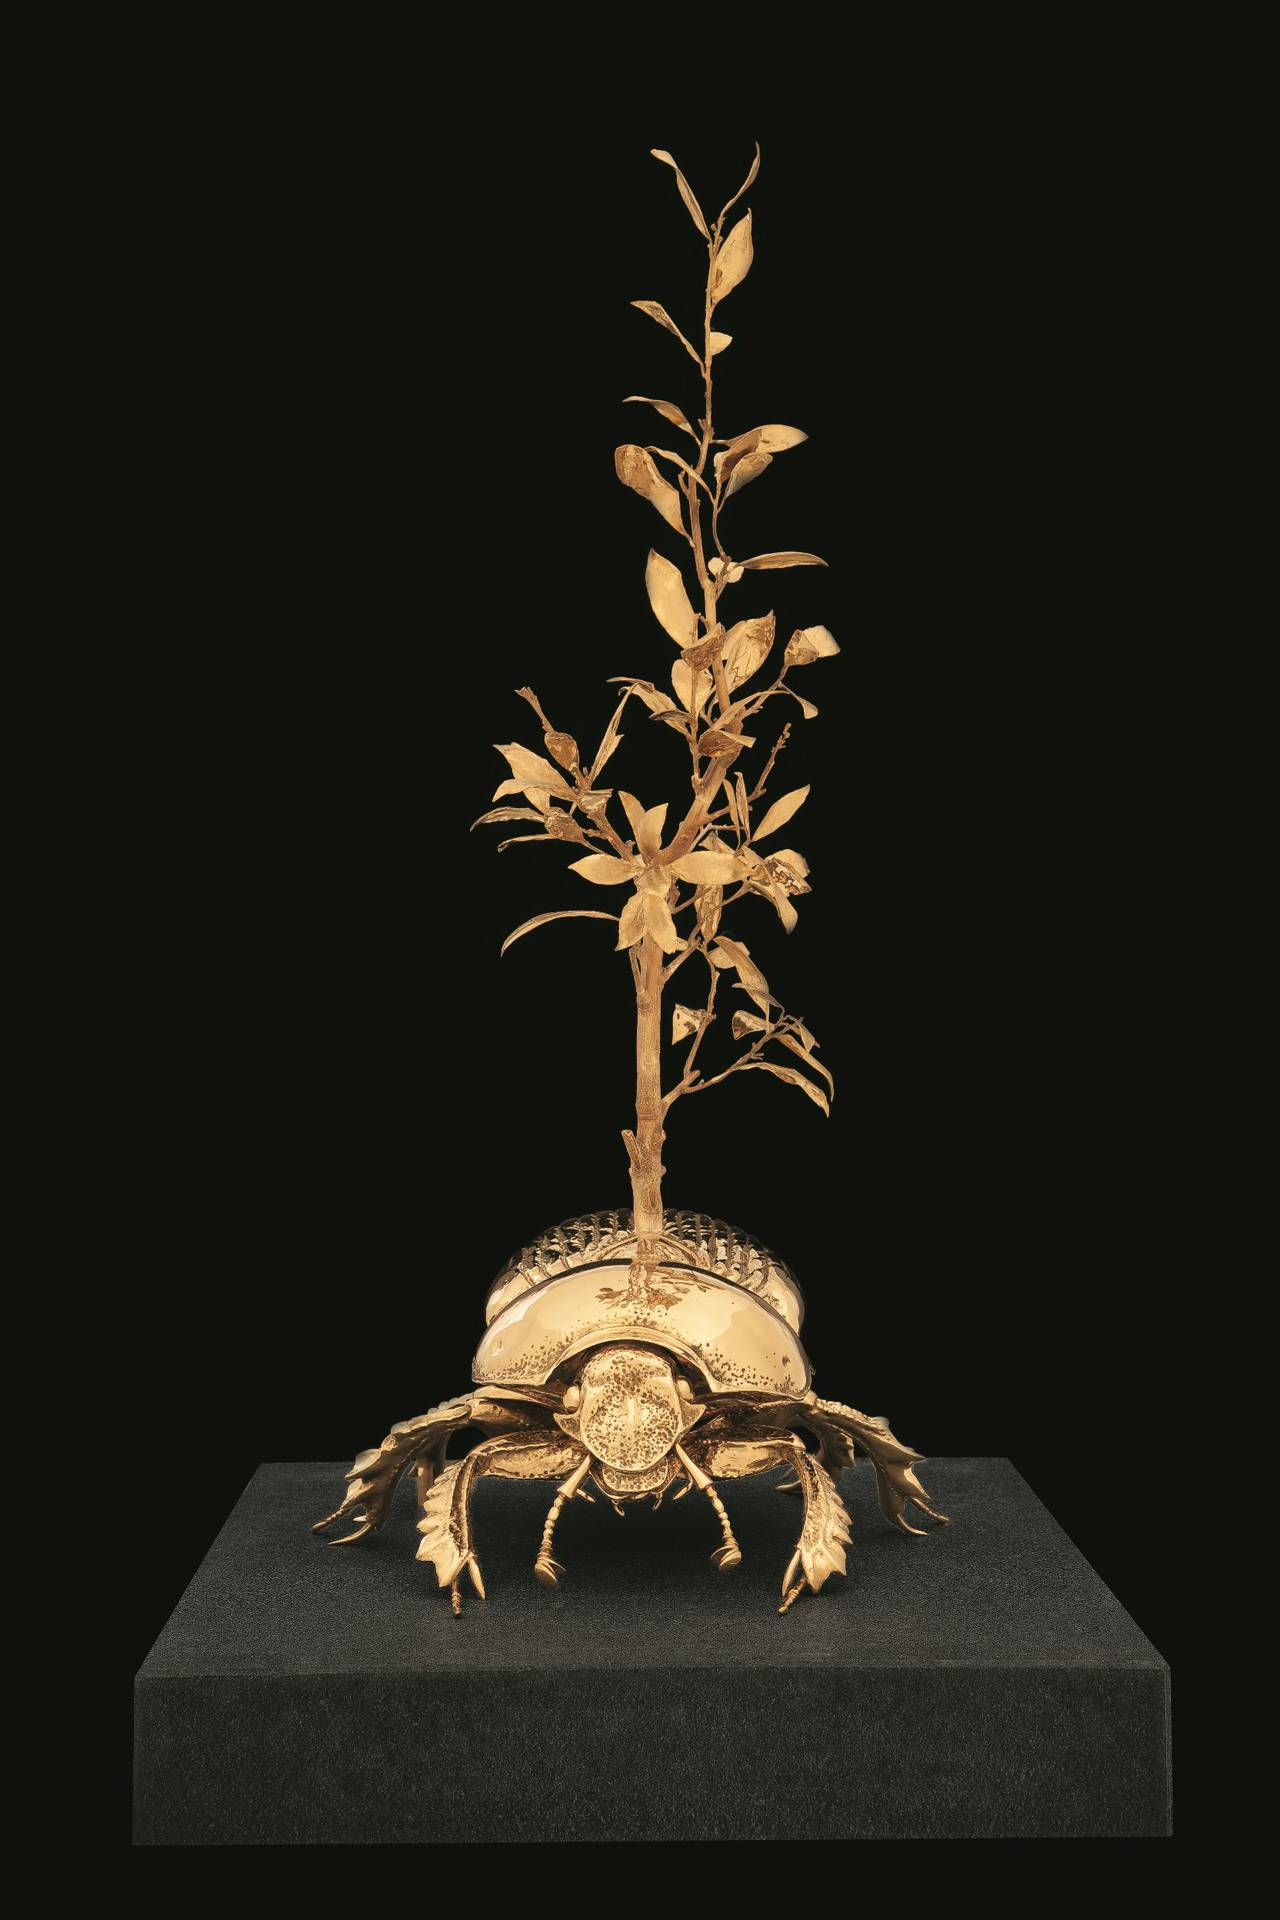 Jan Fabre Scarabeo stercorario sacro con albero di alloro (2012)/Holy dung beetle with laurel tree (2012) Fotografo/Photographer: Pat Verbruggen Copyright: Angelos bvba